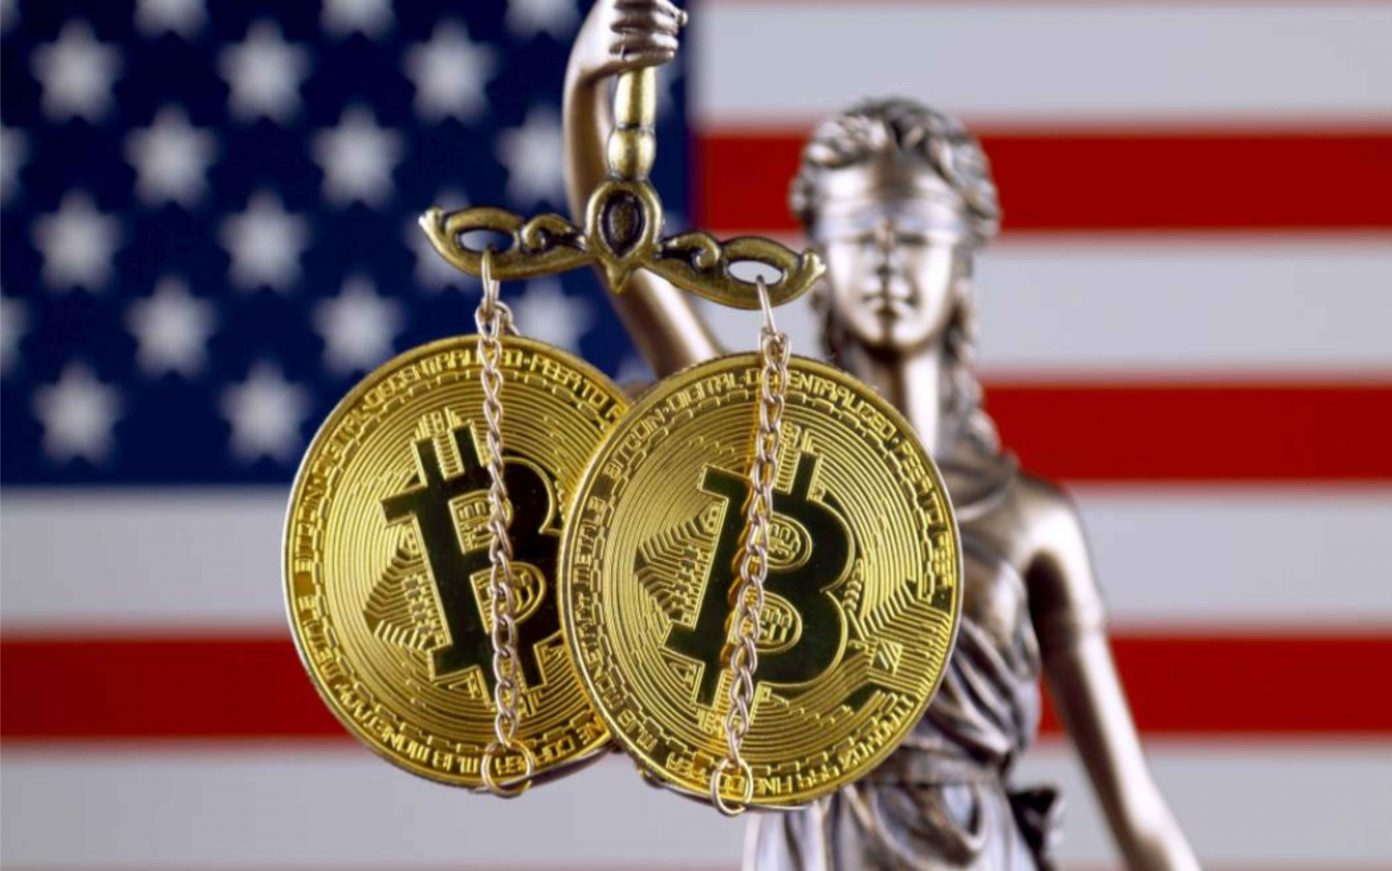 Survey: 60% of Americans Think Crypto Should Be Treated as Fiat in Political Campaigns